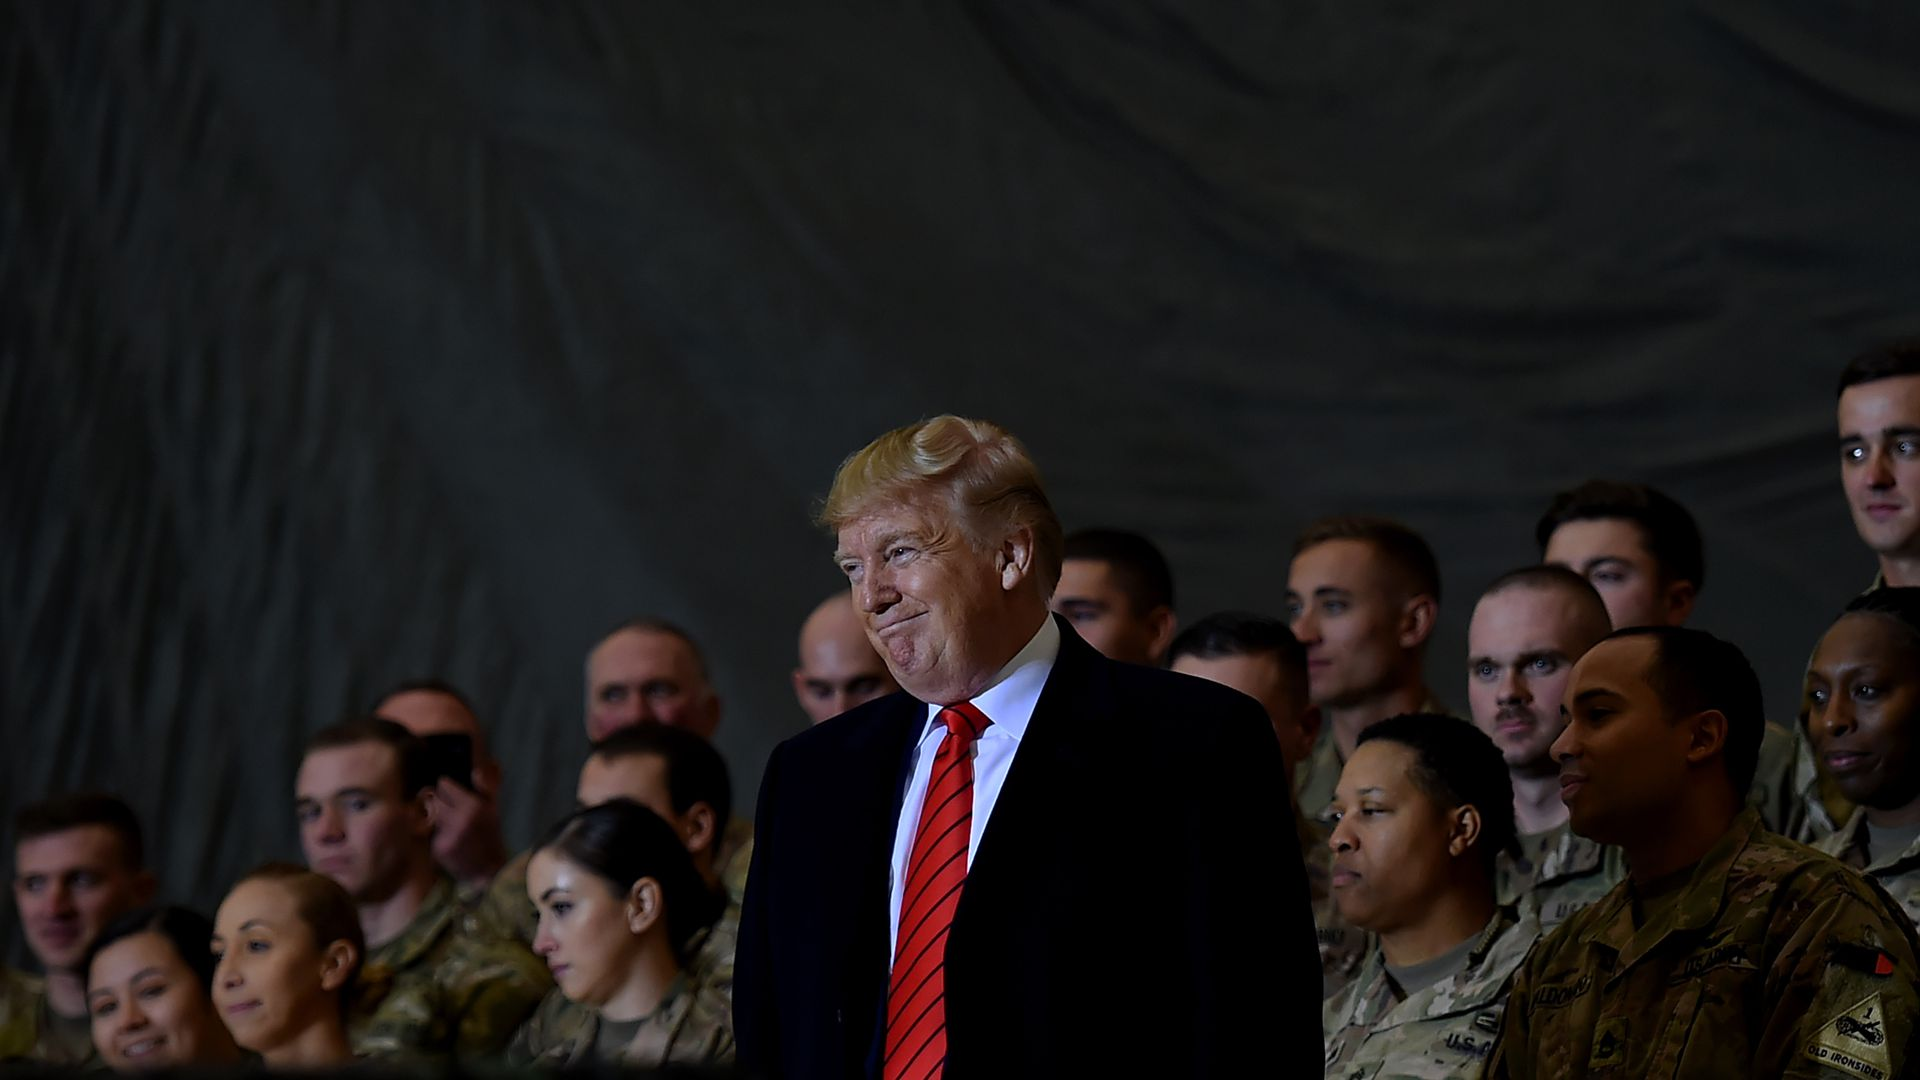 In this image, Trump stands in front of a few rows of soldiers.